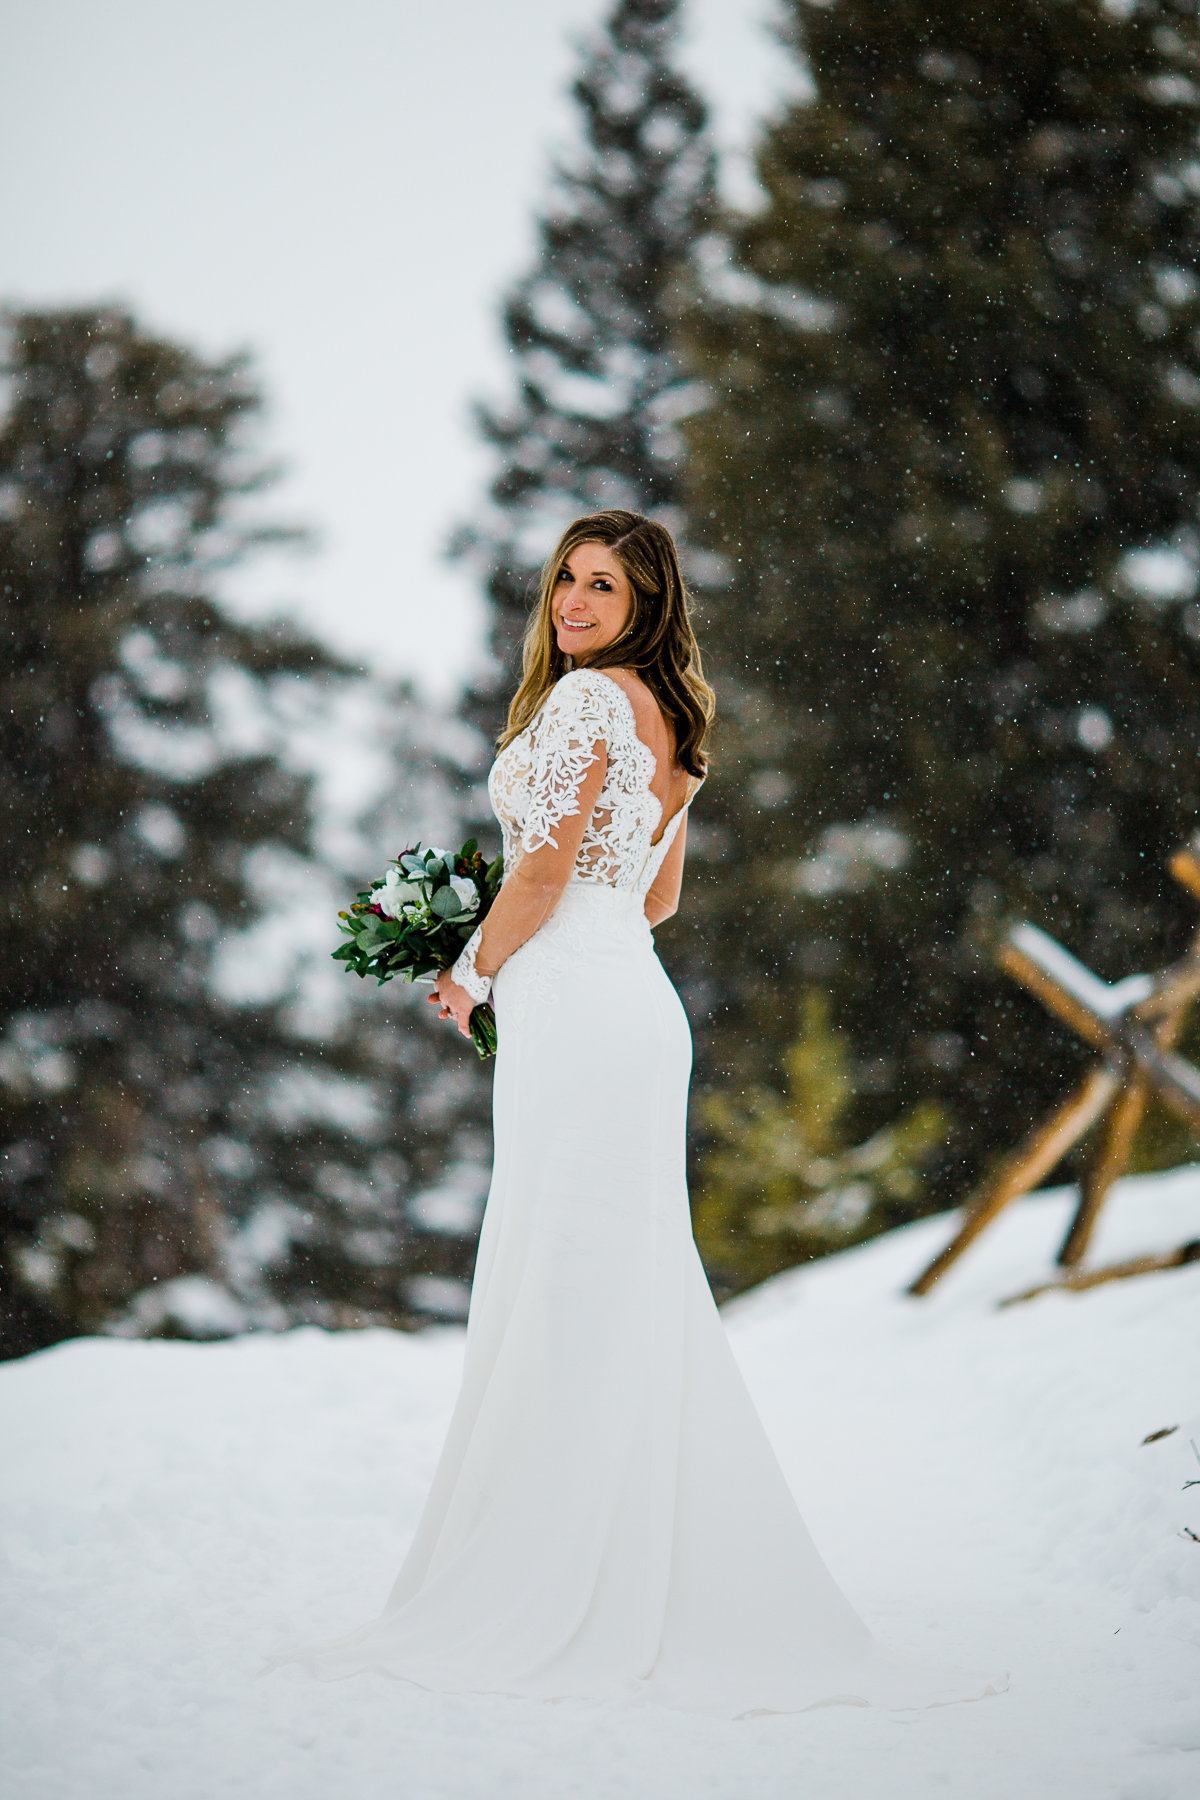 Vertical Winter Portrait of the bride after the ceremony at Sapphire Point Overlook Colorado